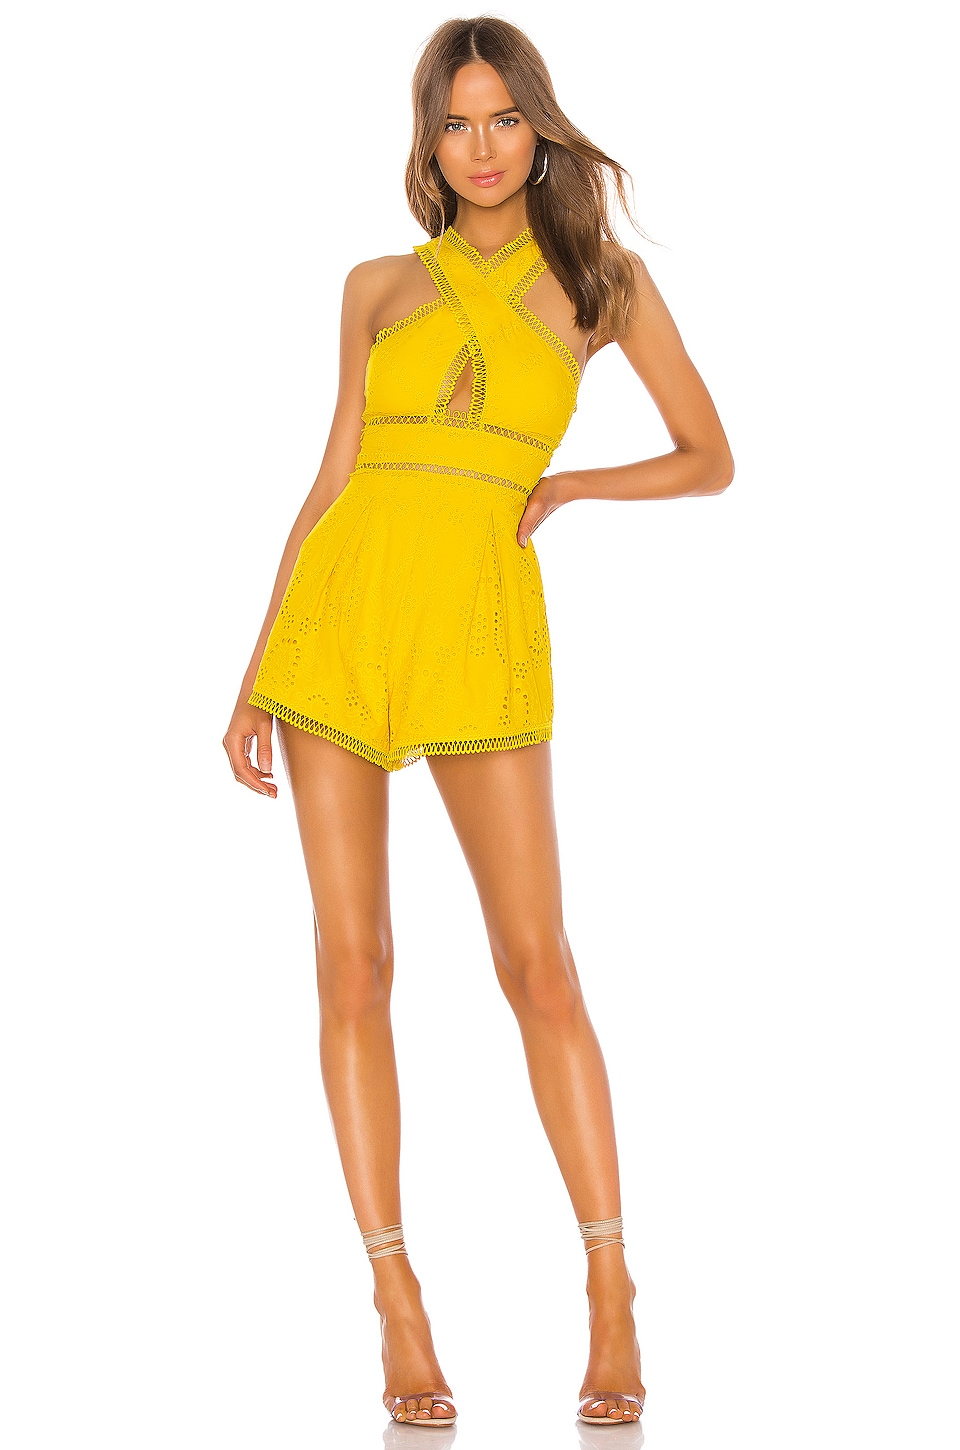 X by NBD Dreslin Romper in Beeswax Yellow